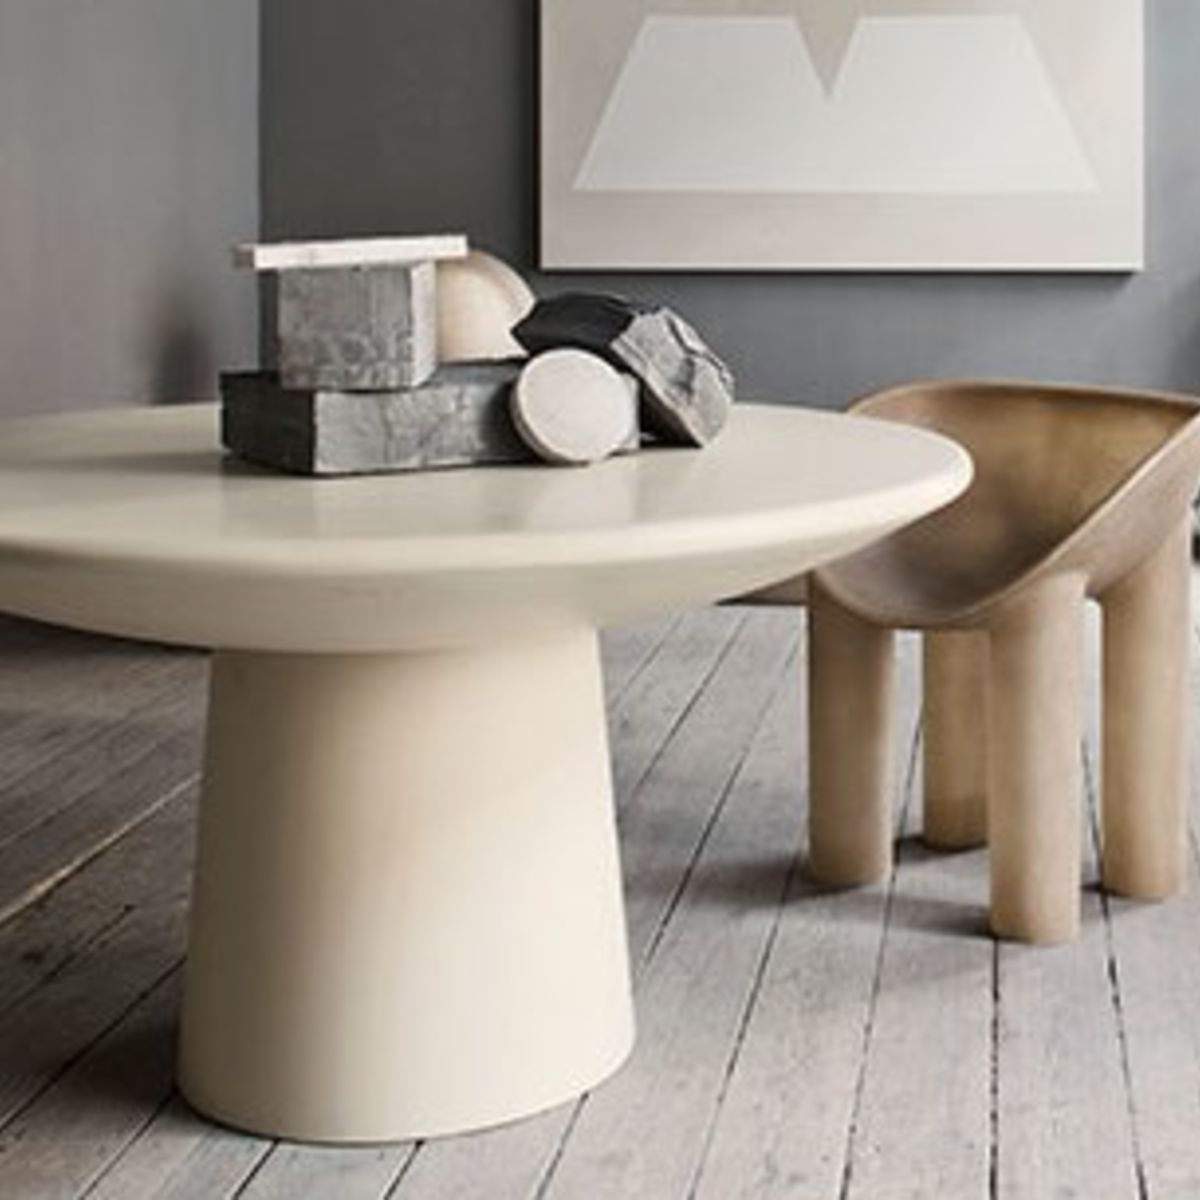 A photo of a table with a roly-poly stool